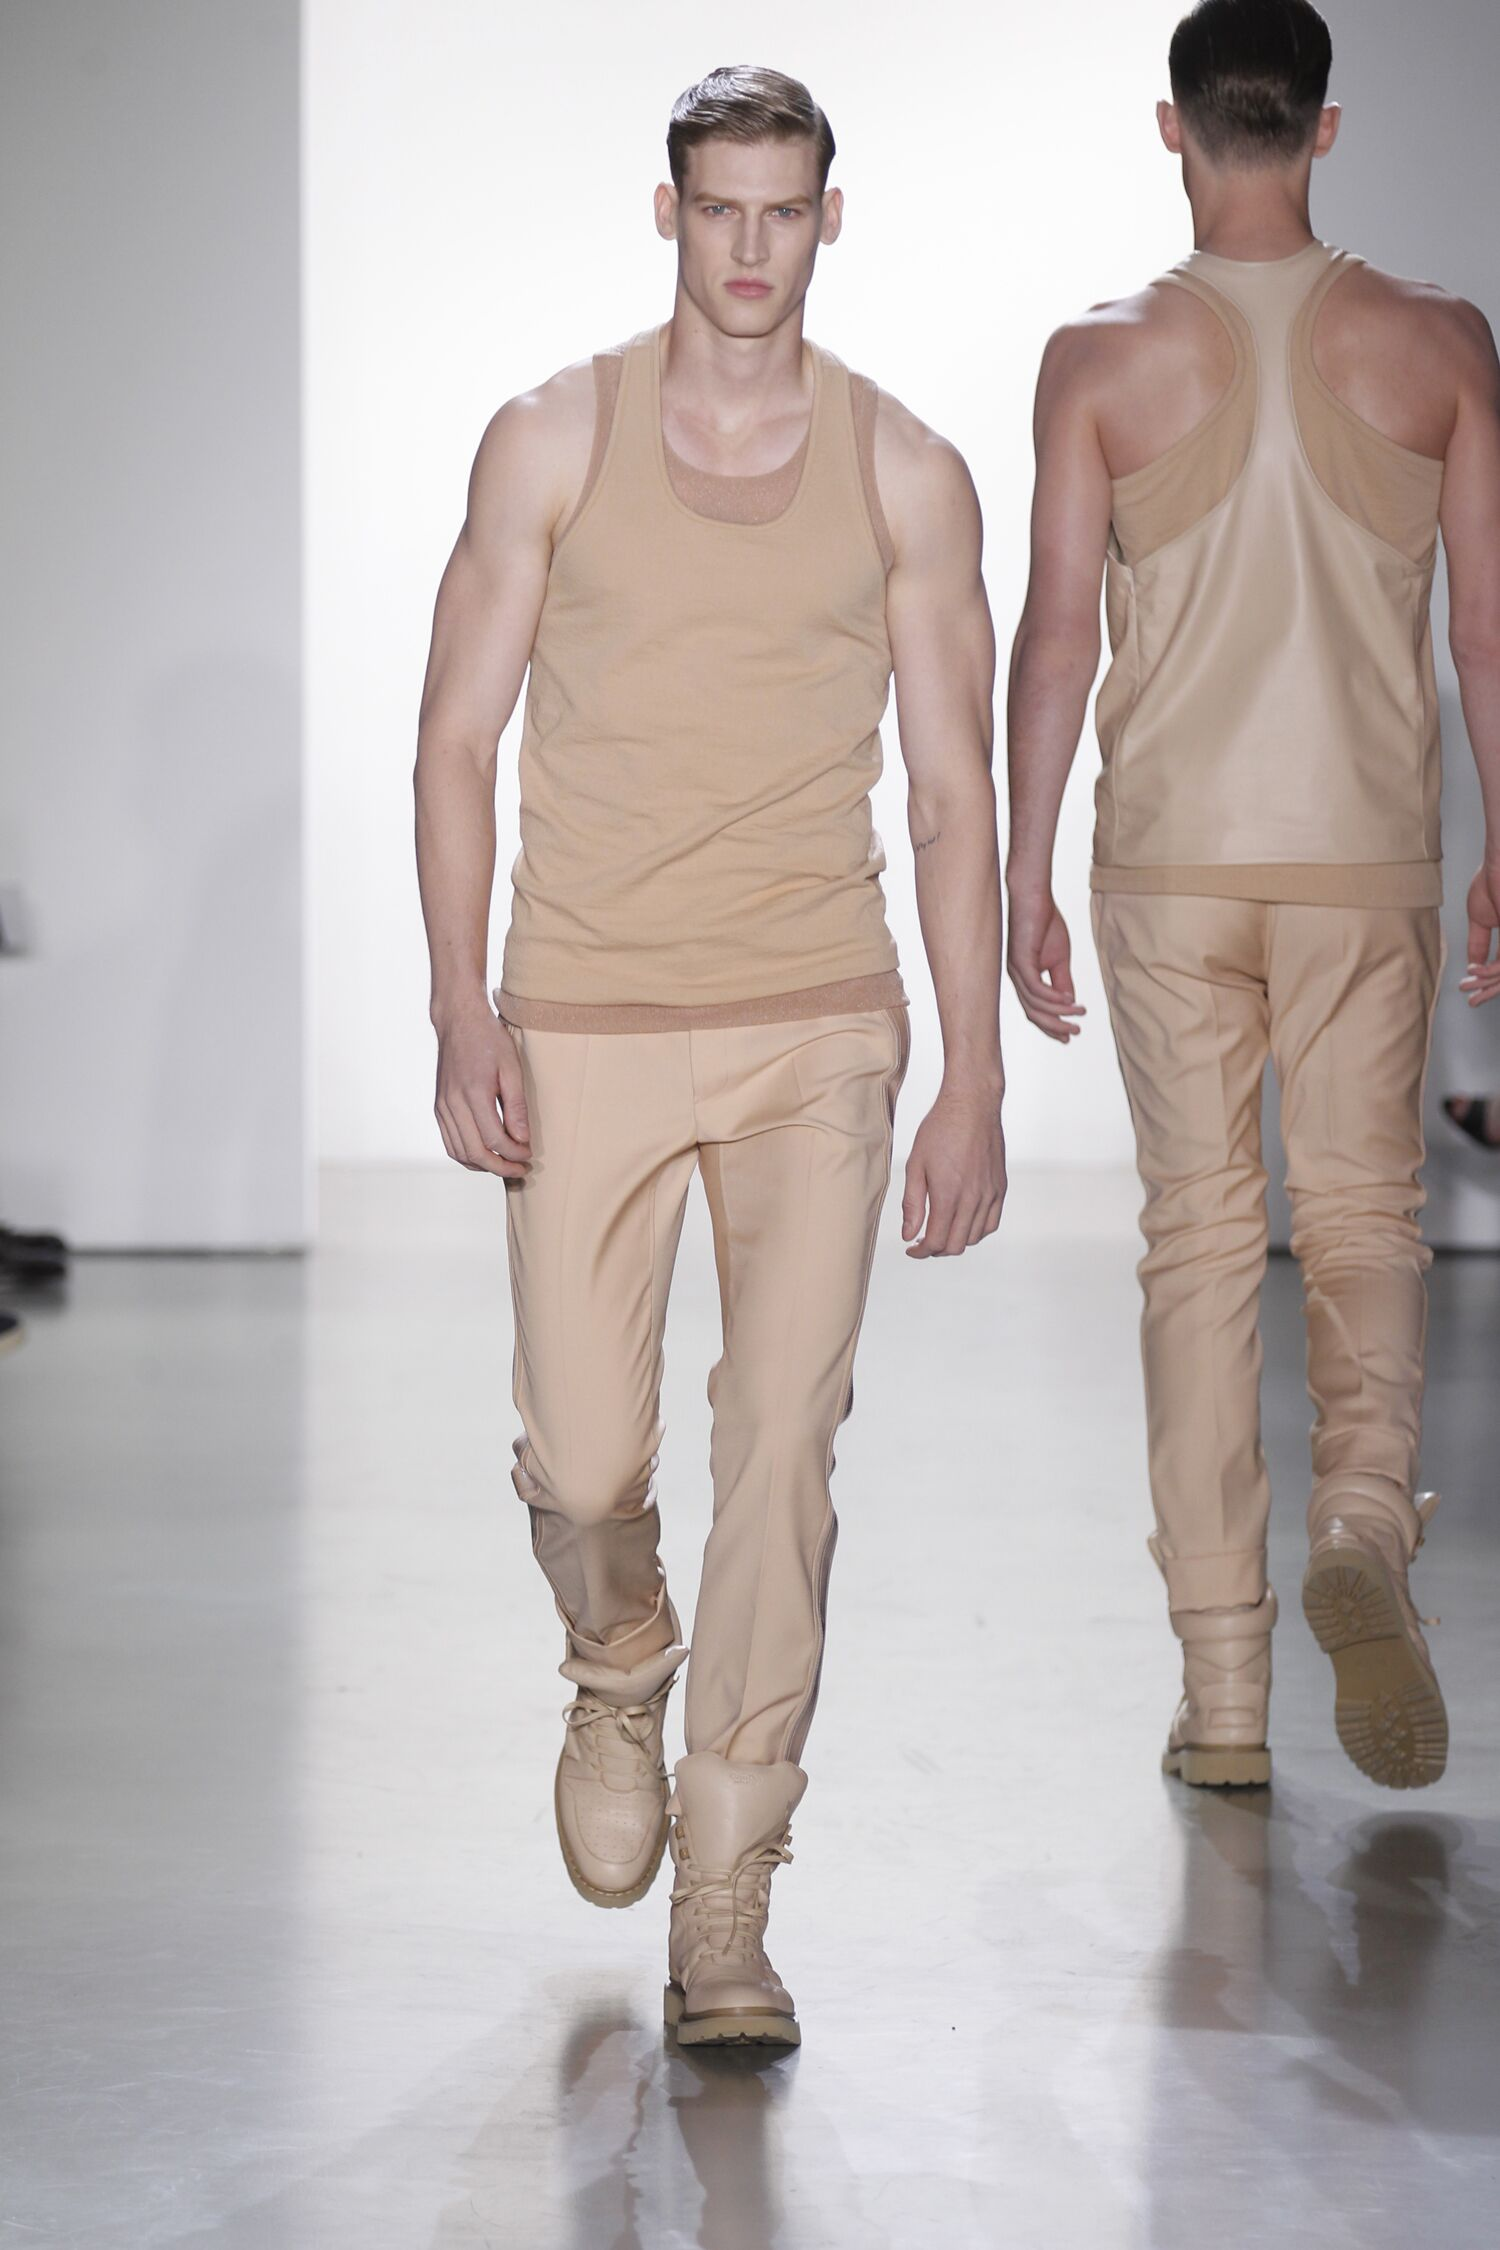 CALVIN KLEIN COLLECTION SS 2015 | The Skinny Beep